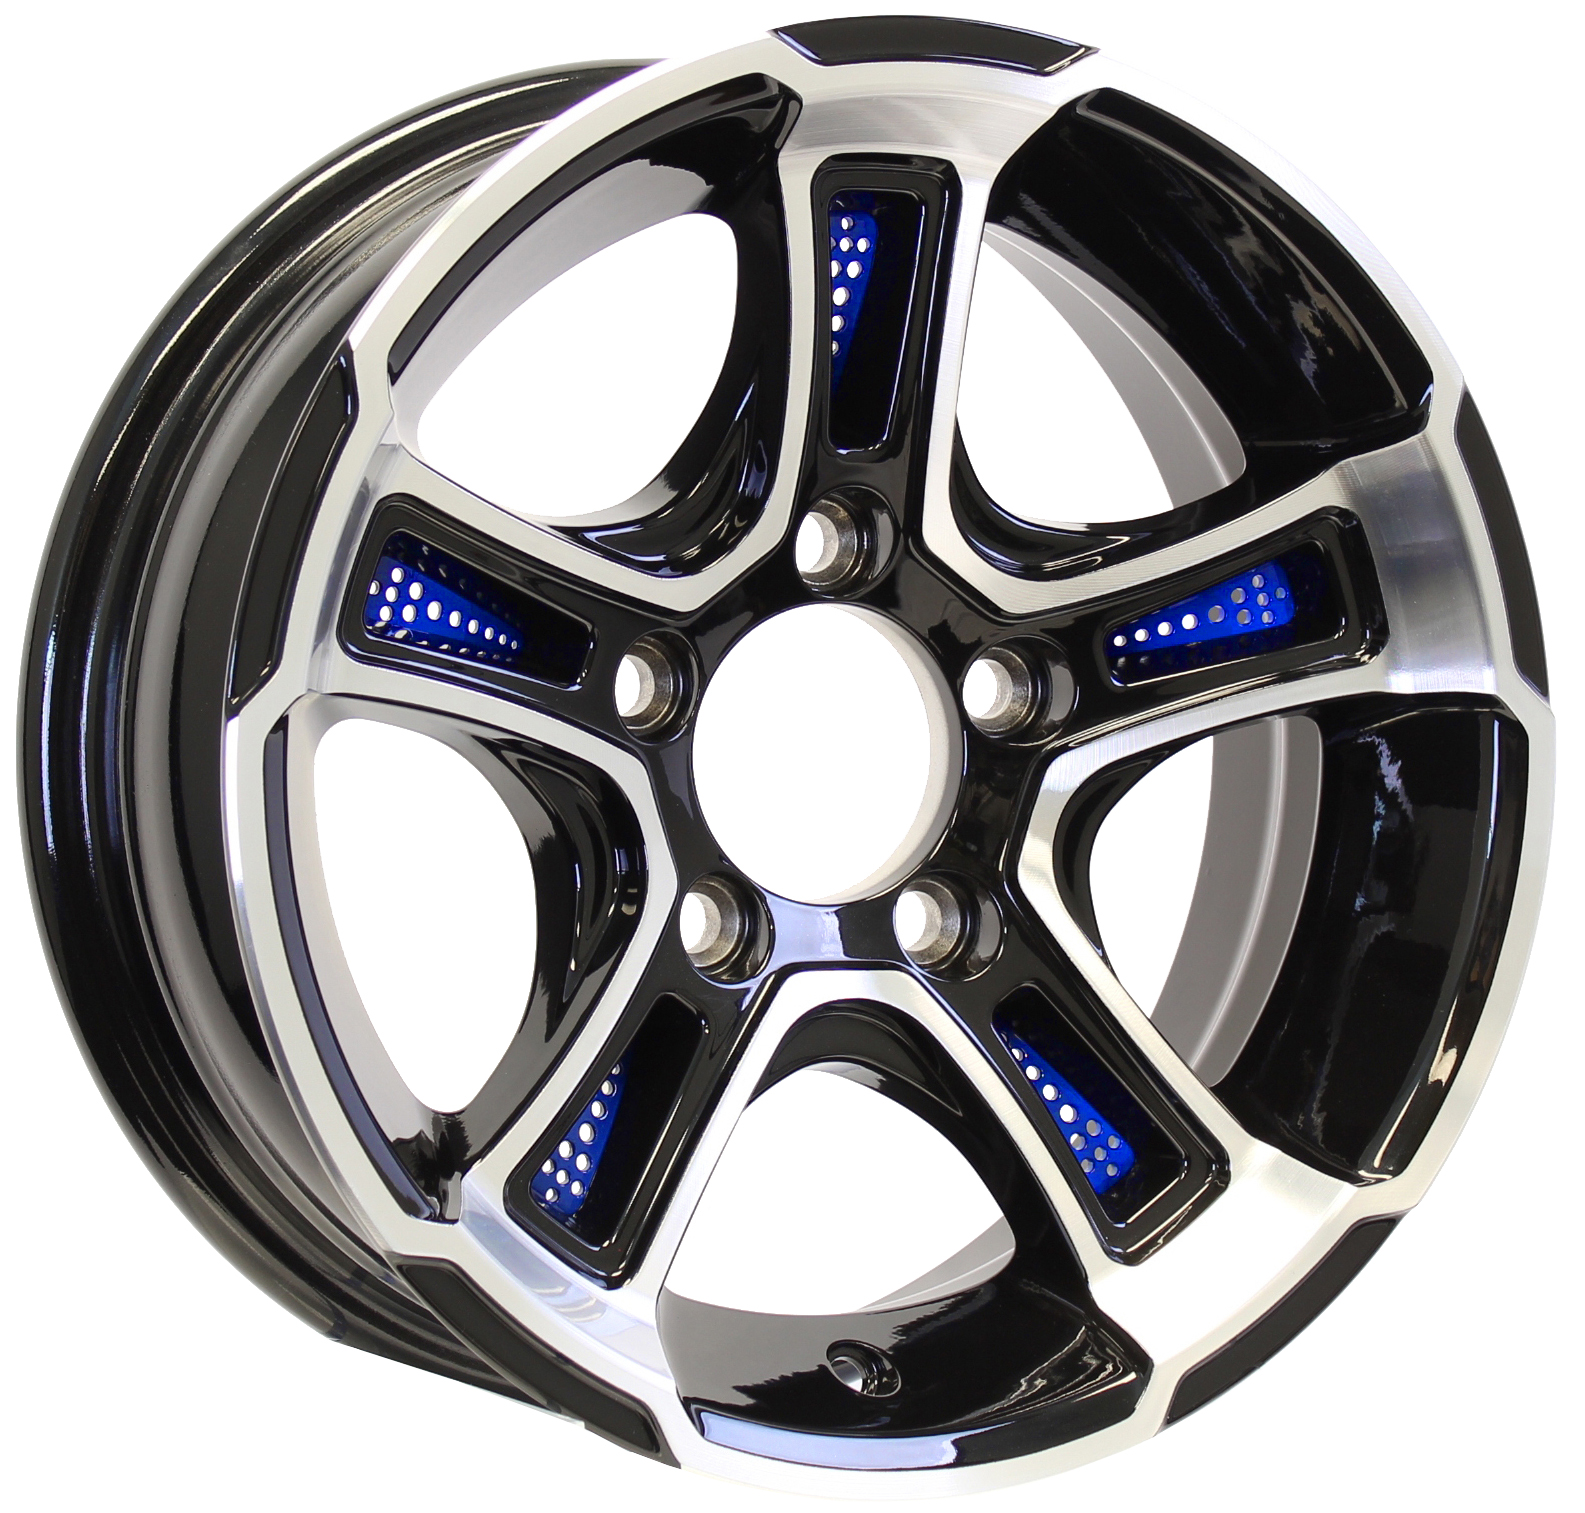 Whitehawk 14x5.5 5-4.5 Black with Blue Inserts Aluminum Trailer Wheel Image